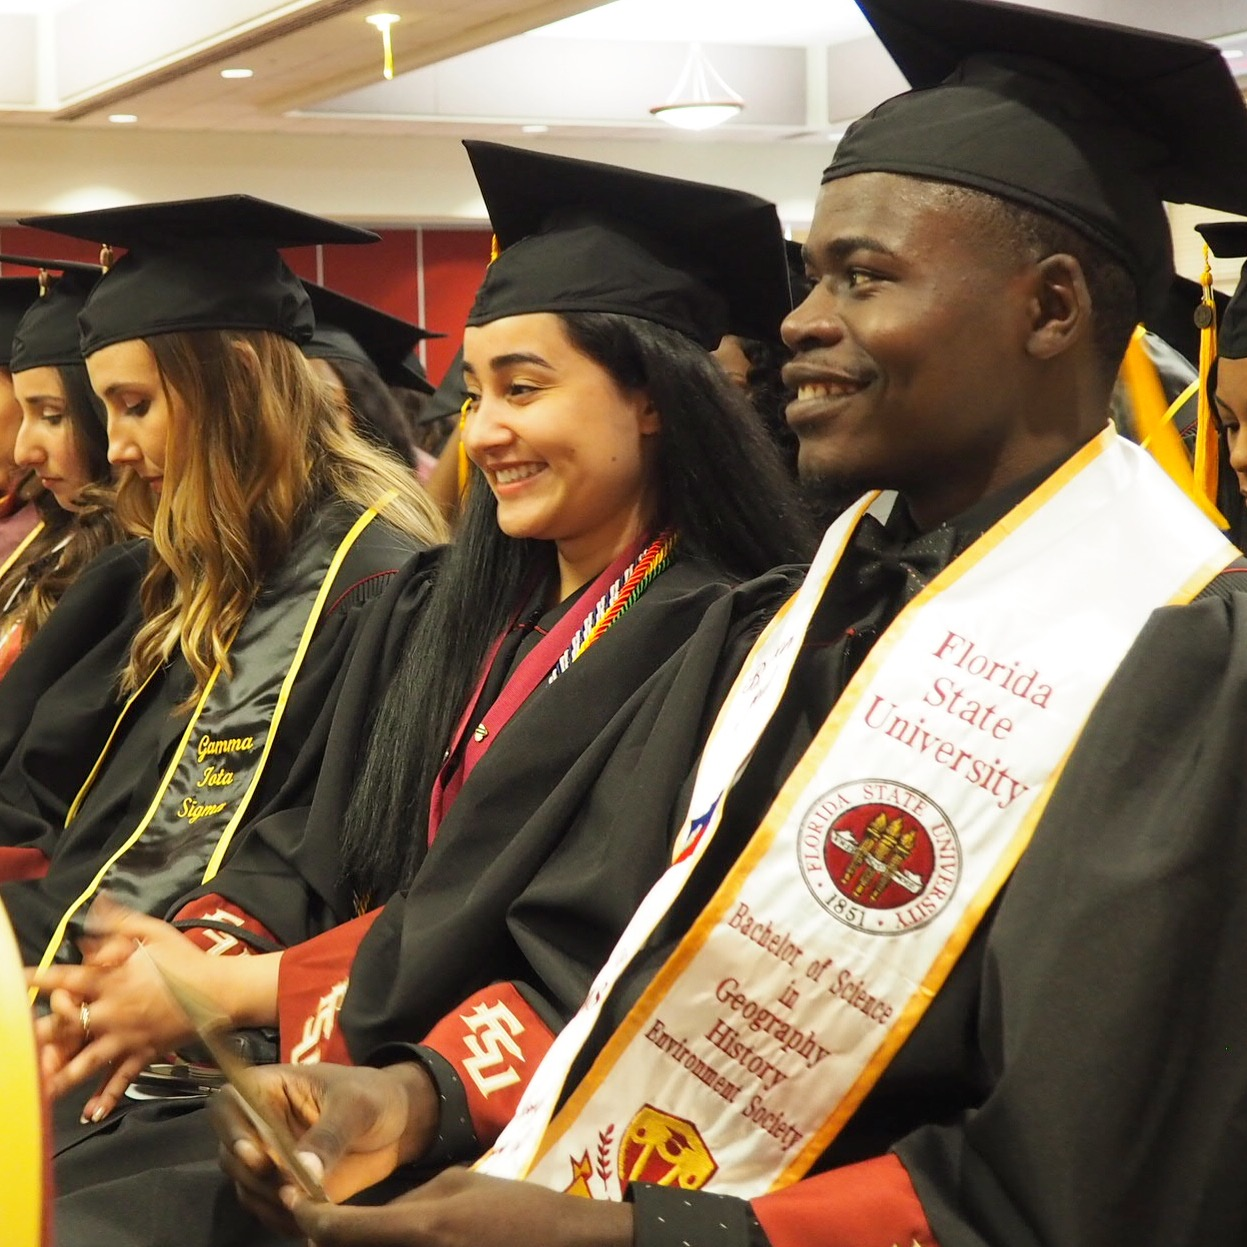 Students in caps and gowns smile at the start of the cultural gradaution ceremony.